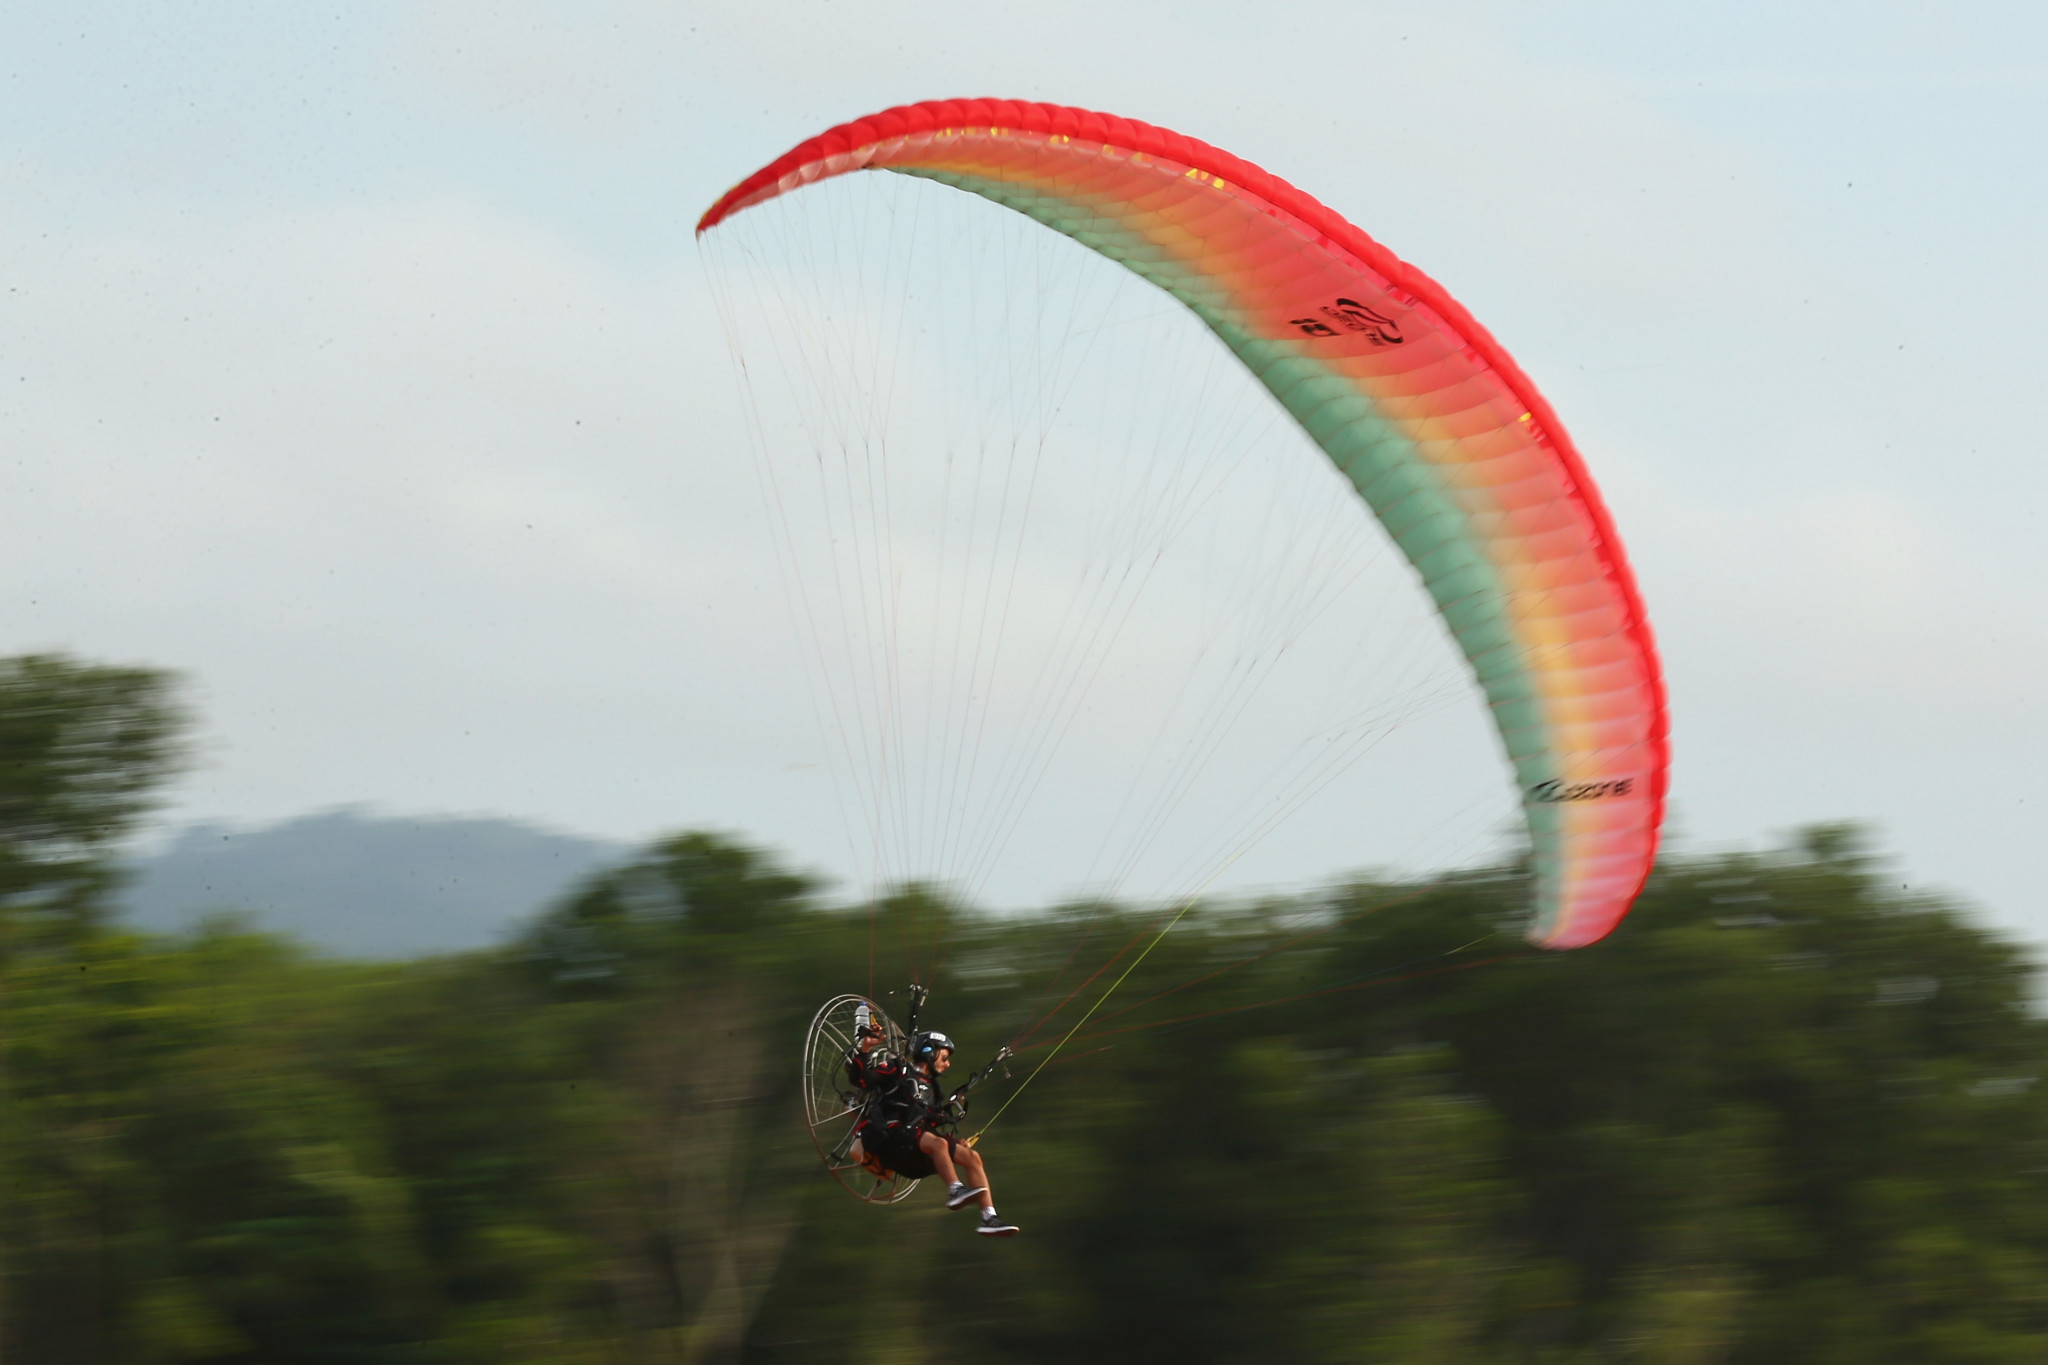 Paragliding will also be contested in Kathmandu ©Getty Images